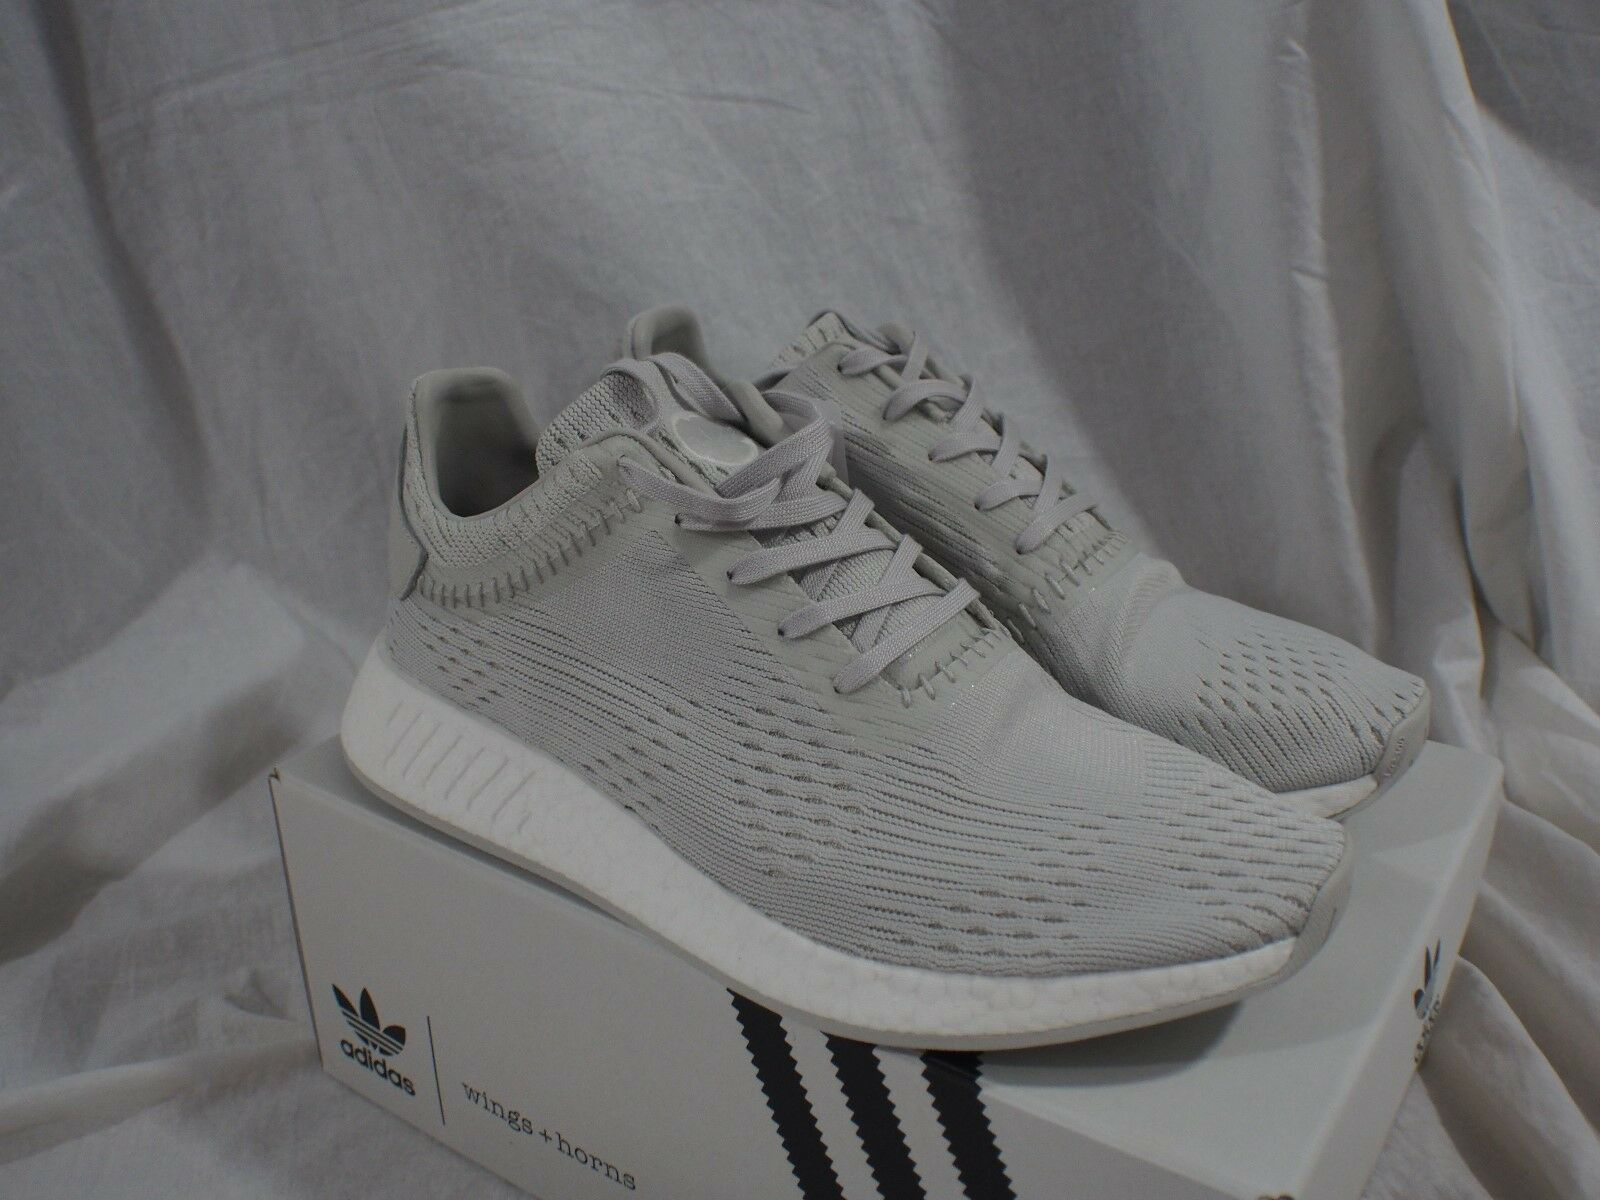 Adidas NMD R2 Wings + Horns Primeknit Hint BB3118